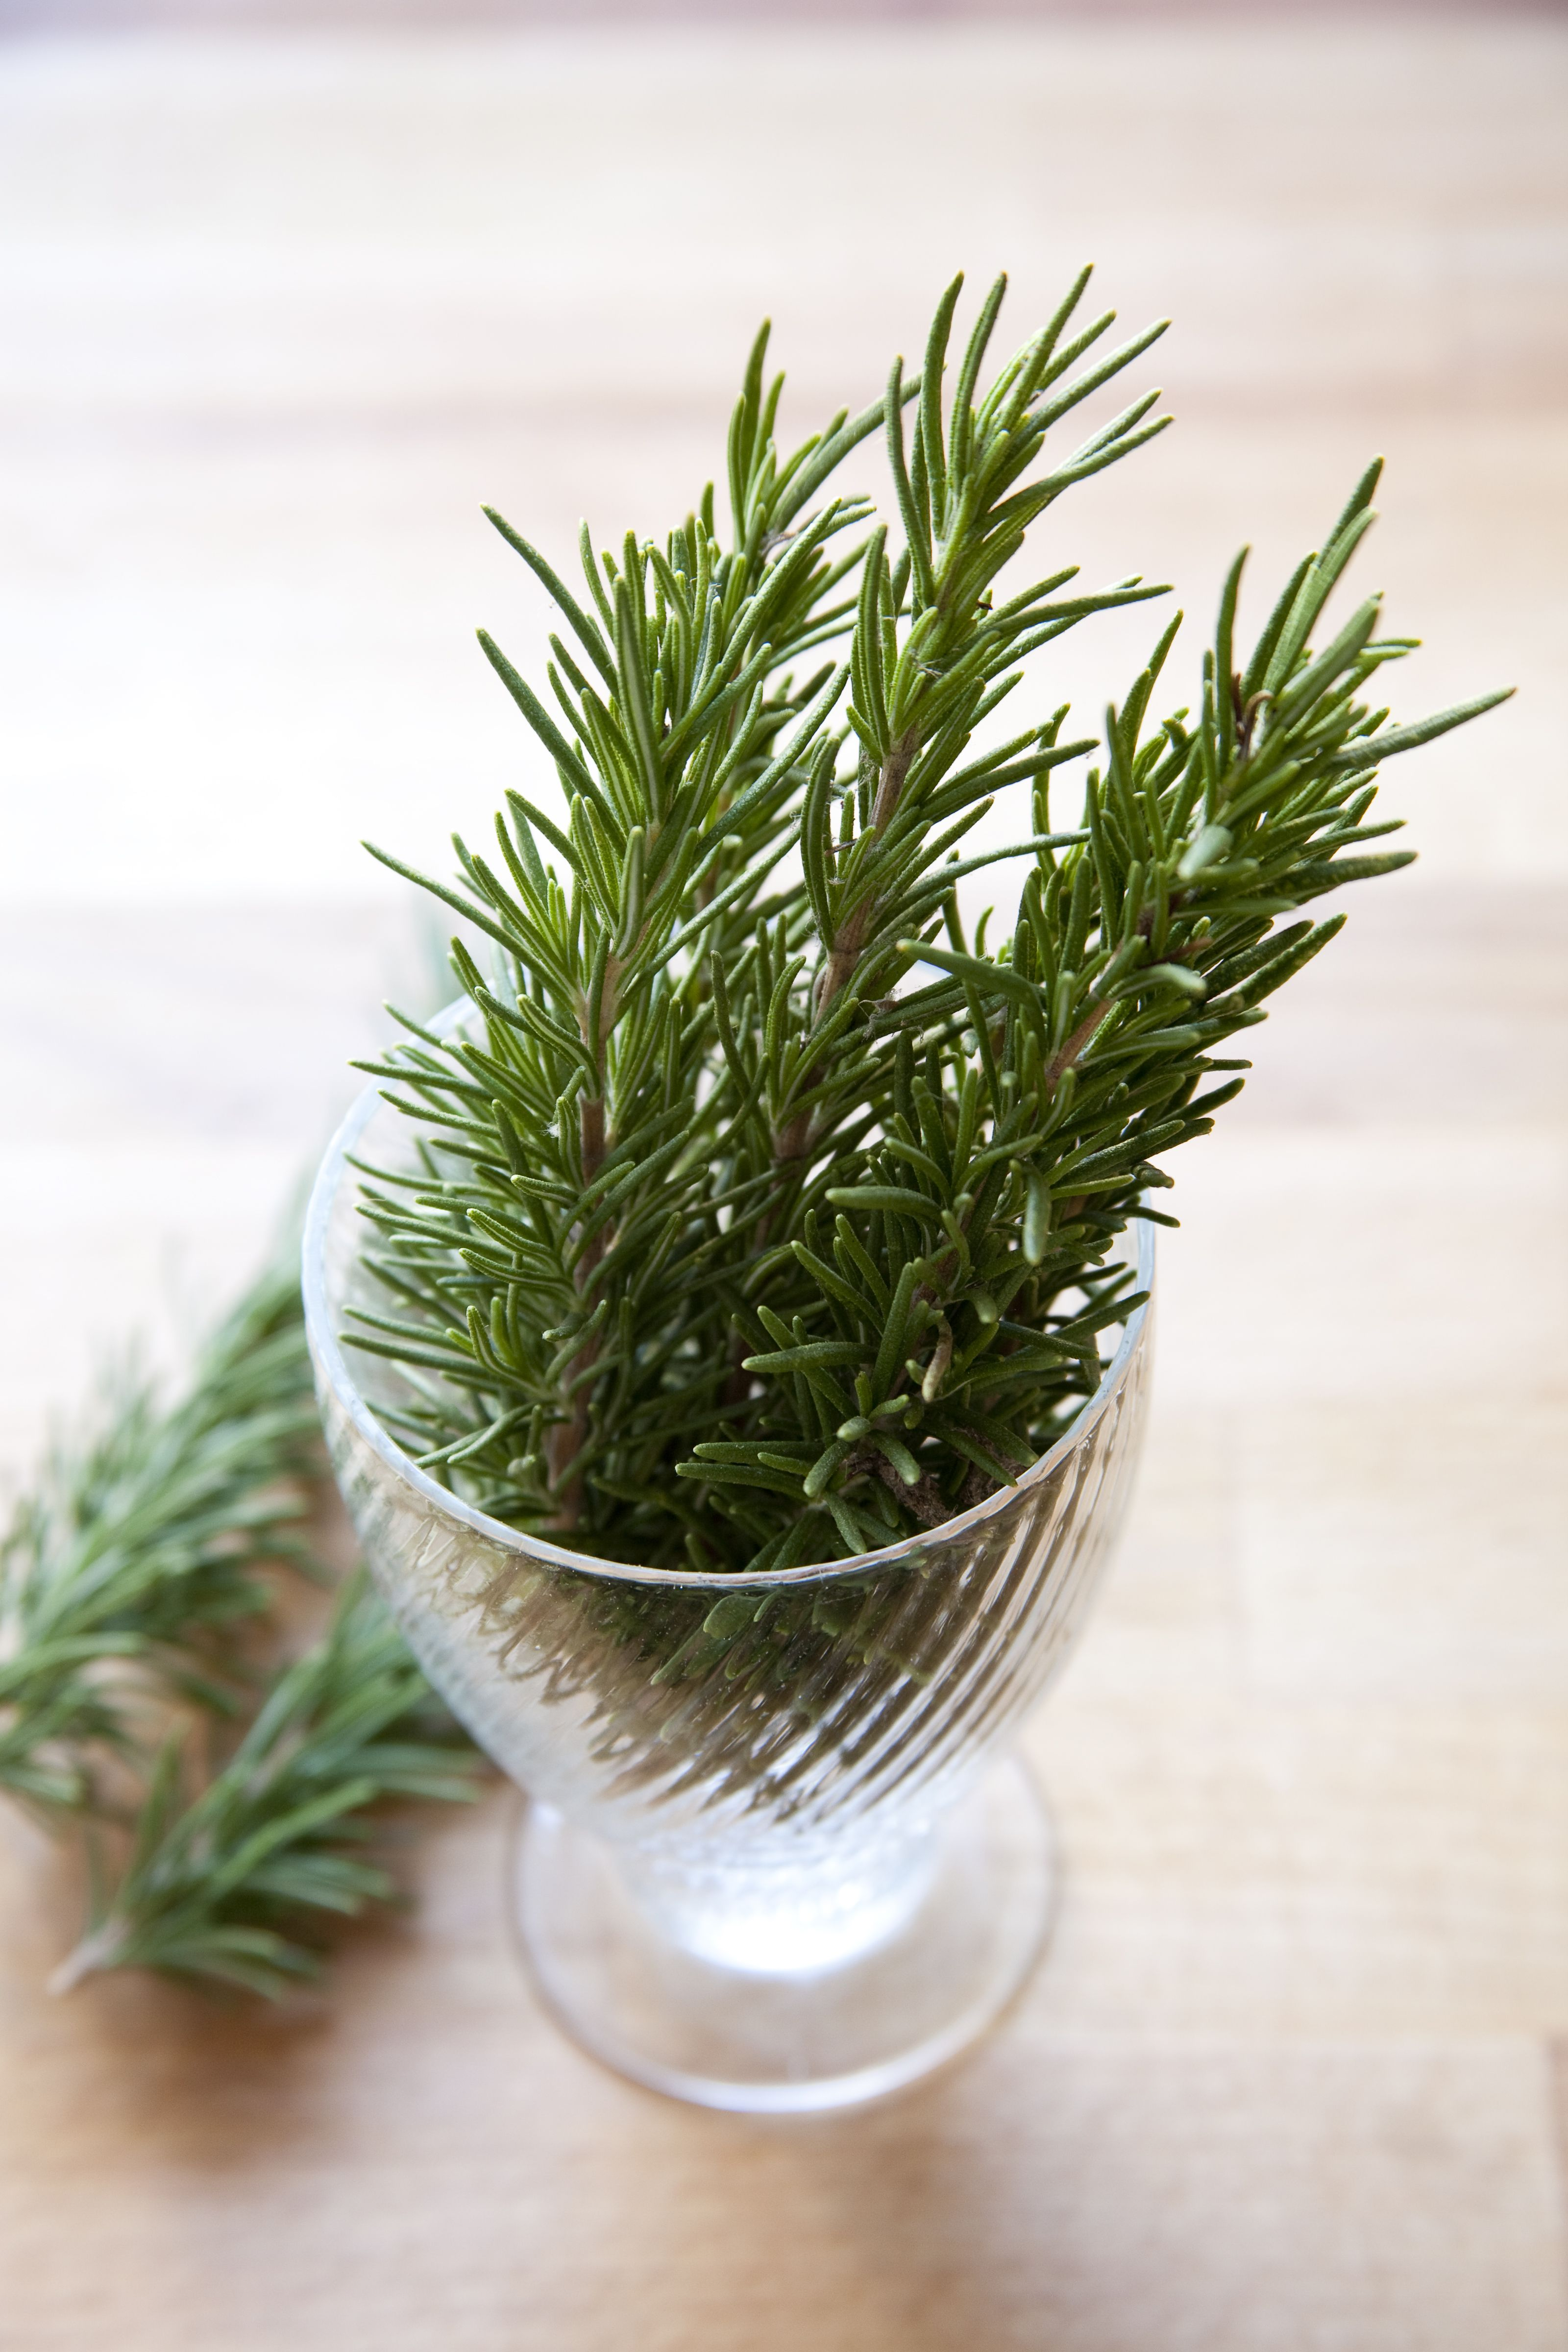 How To Extract Oil From Rosemary Hunker Herbs Essential Oils Rosemary Extract Oils